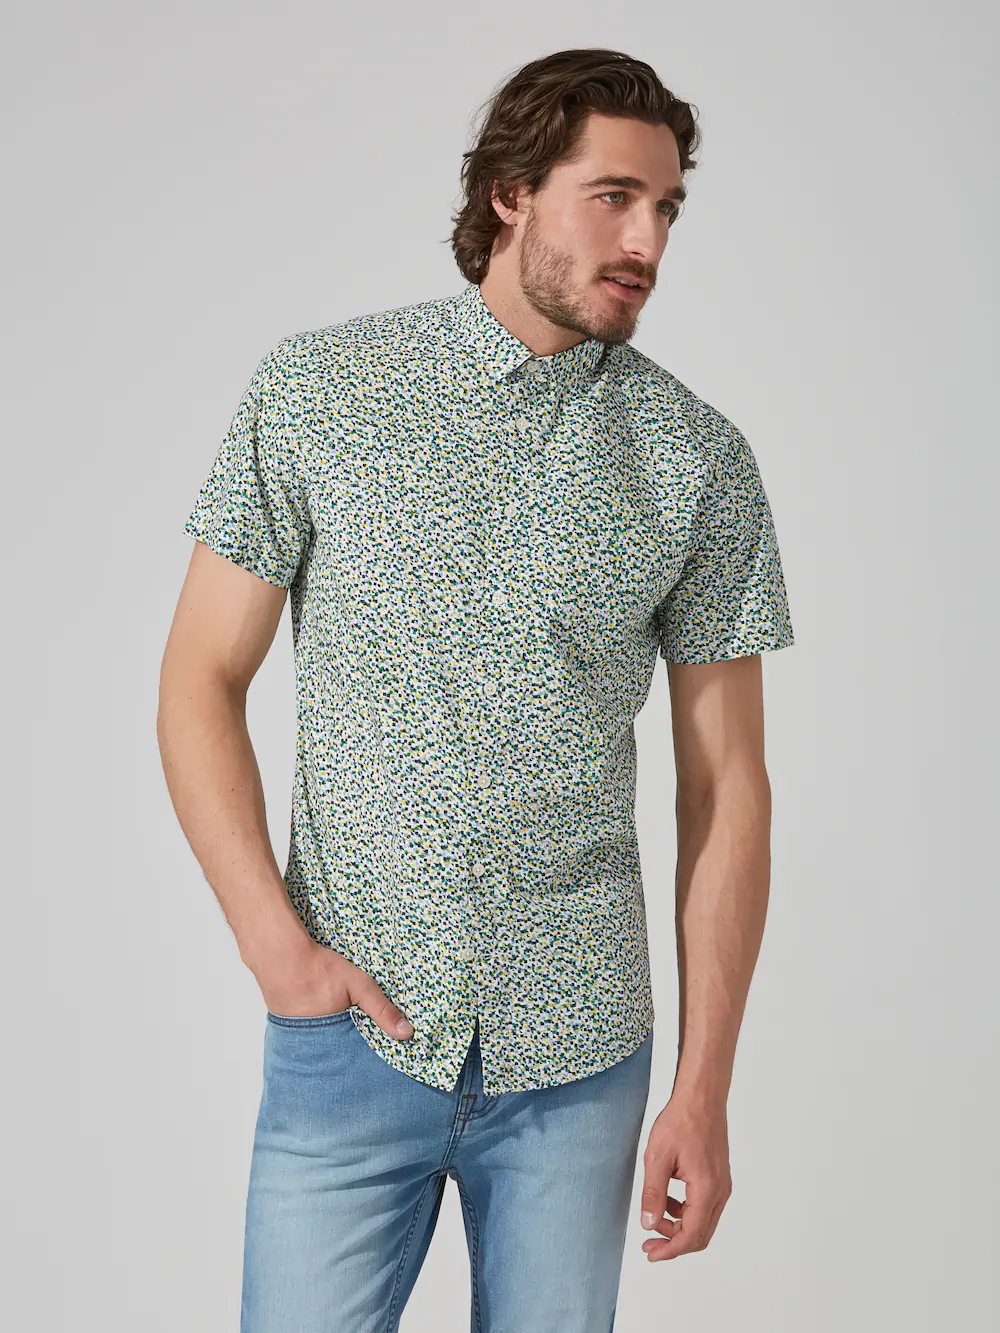 Frank + Oak 90s Geo-print Poplin Cotton Shirt